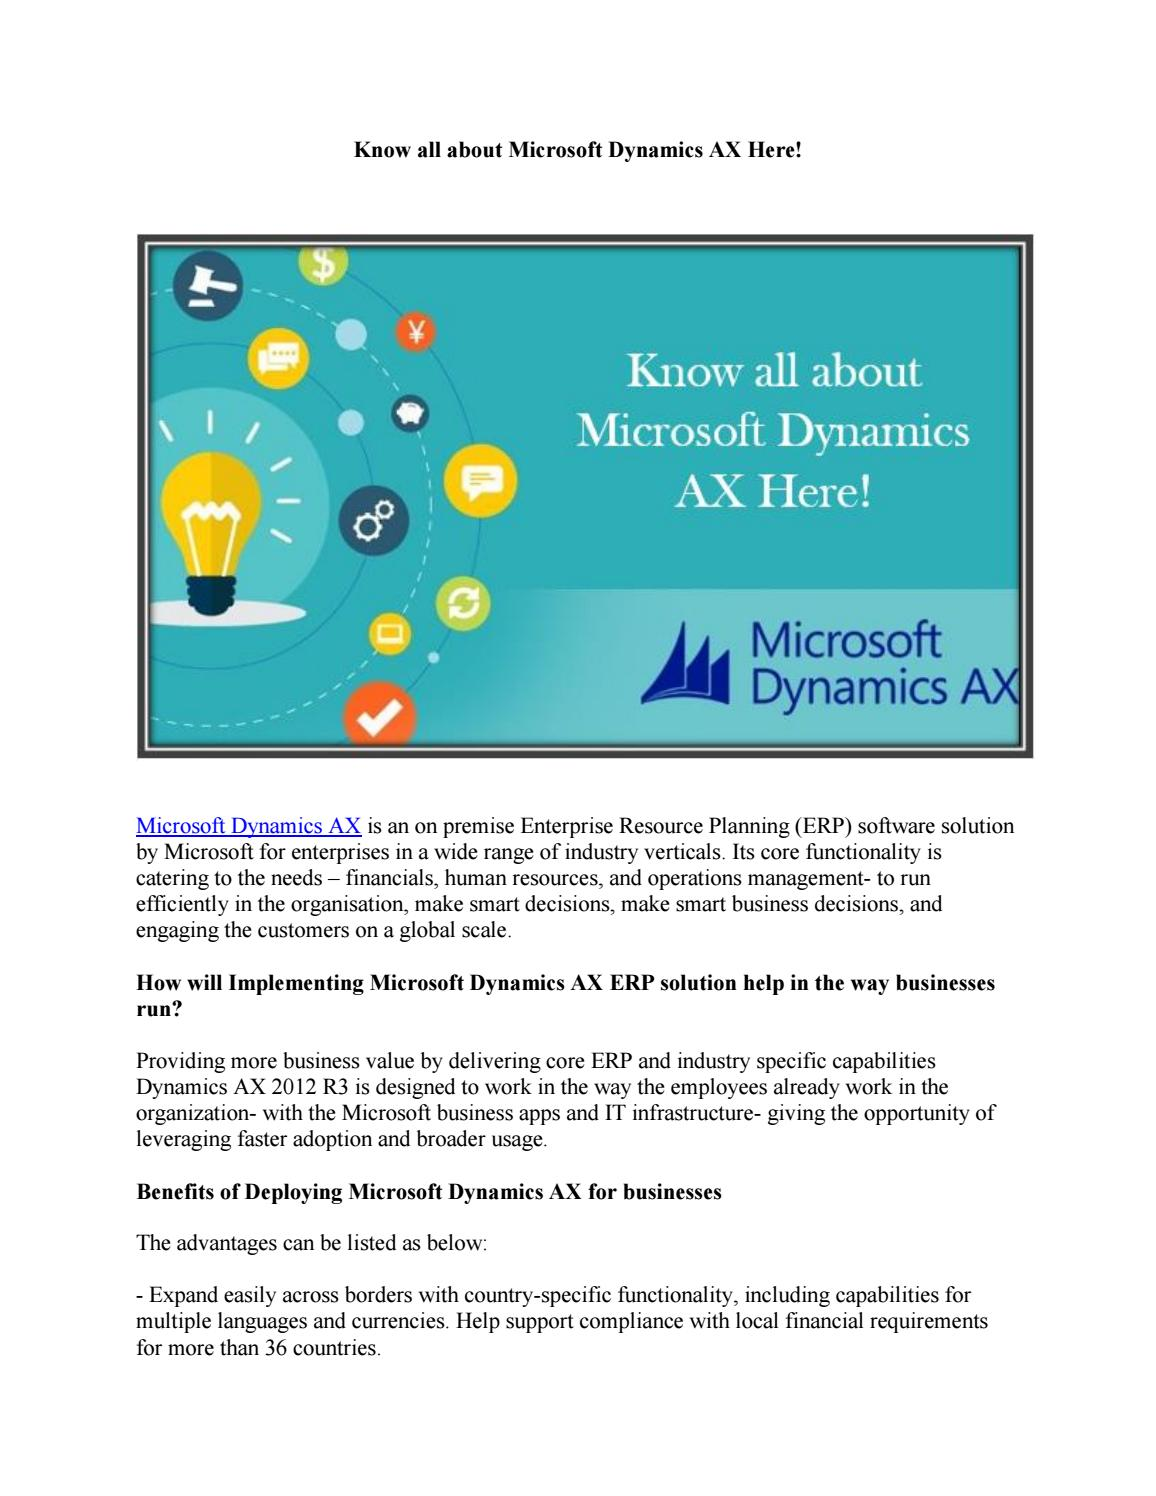 Know All About Microsoft Dynamics Ax Here By Devikaletec Issuu